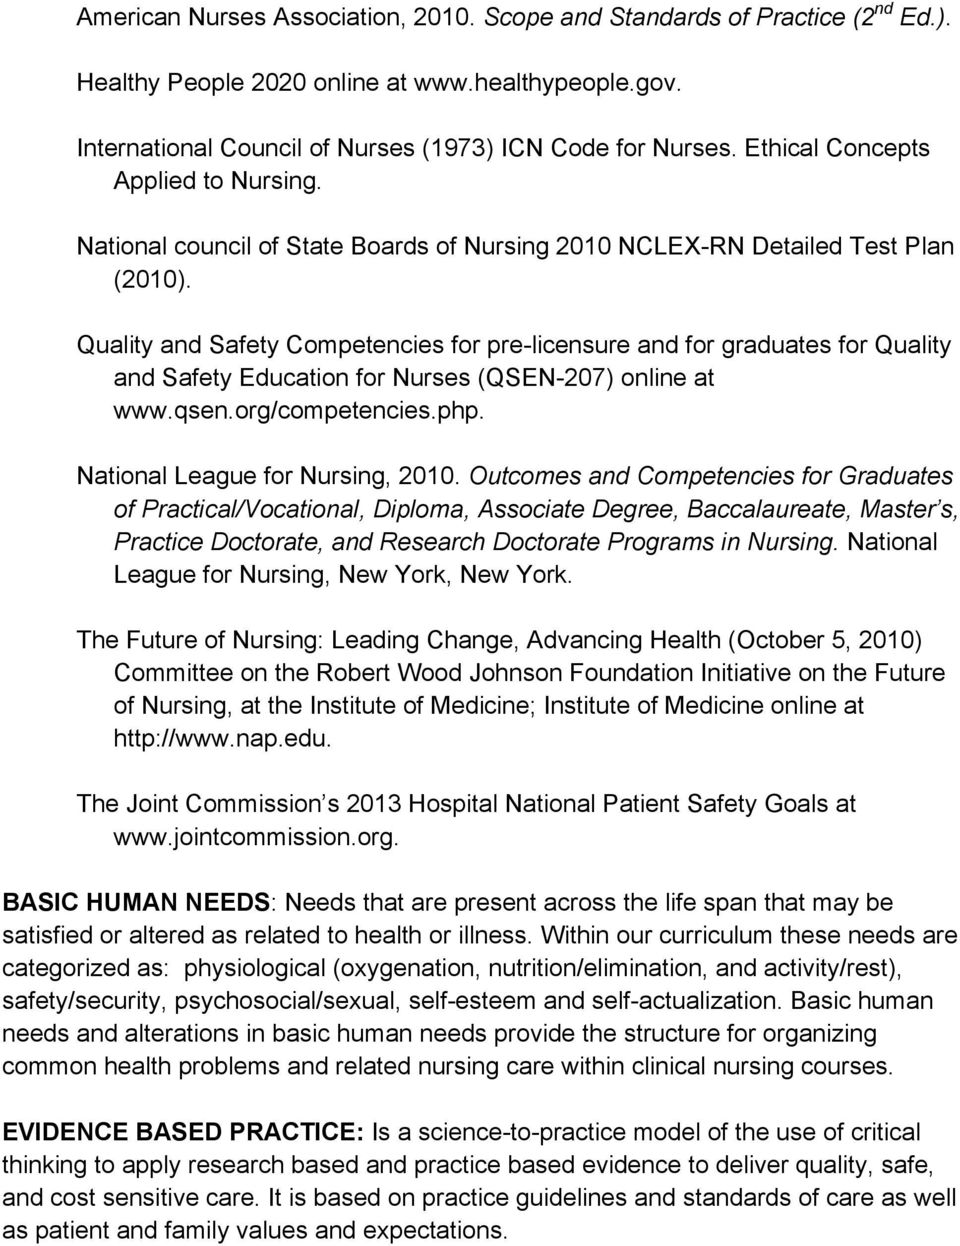 Quality and Safety Competencies for pre-licensure and for graduates for Quality and Safety Education for Nurses (QSEN-207) online at www.qsen.org/competencies.php. National League for Nursing, 2010.